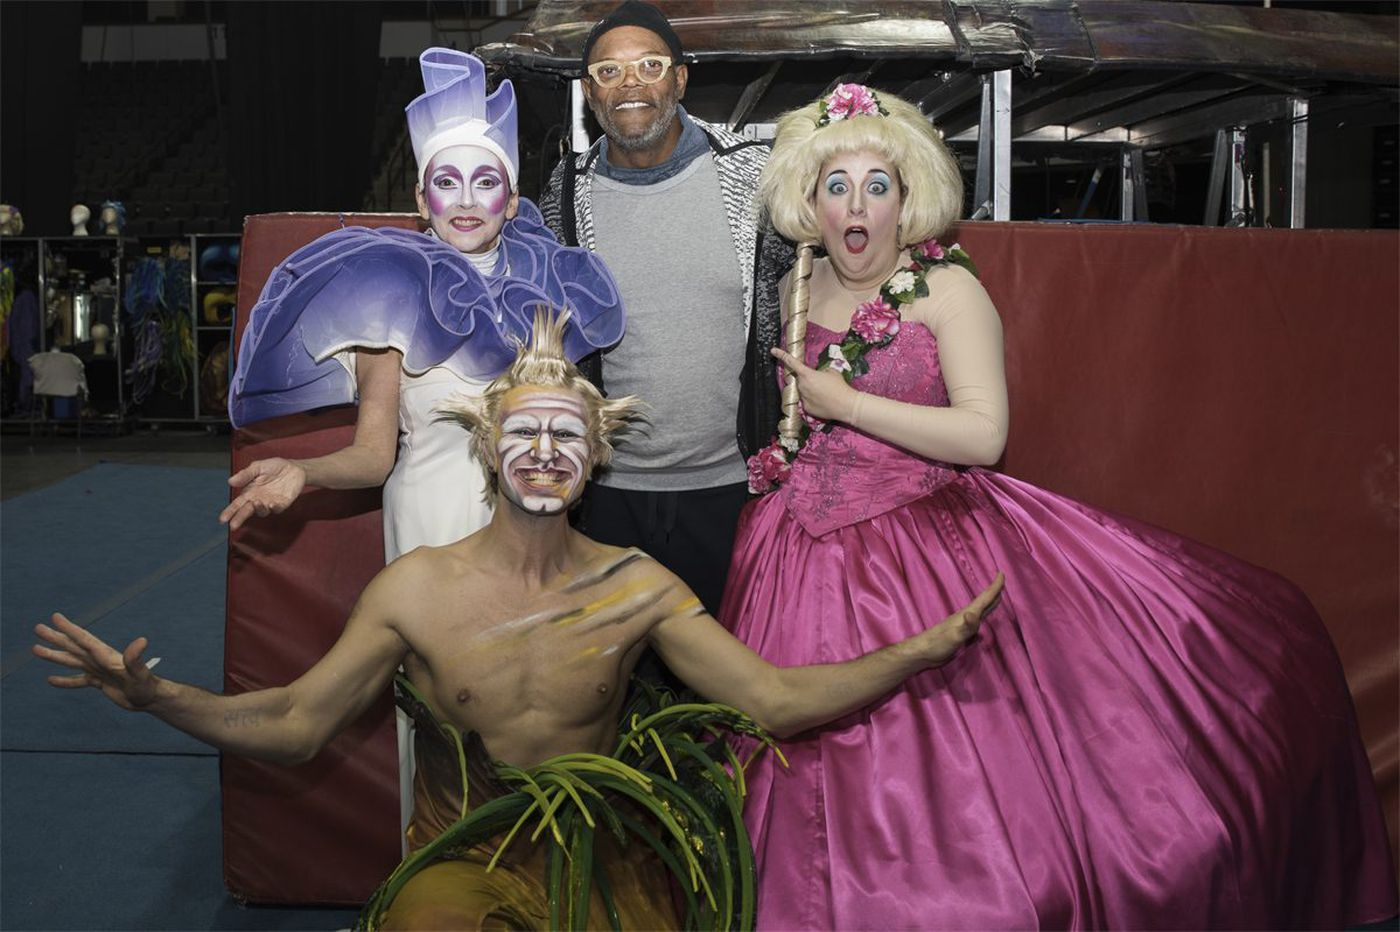 Samuel L. Jackson hangs out with Cirque du Soleil